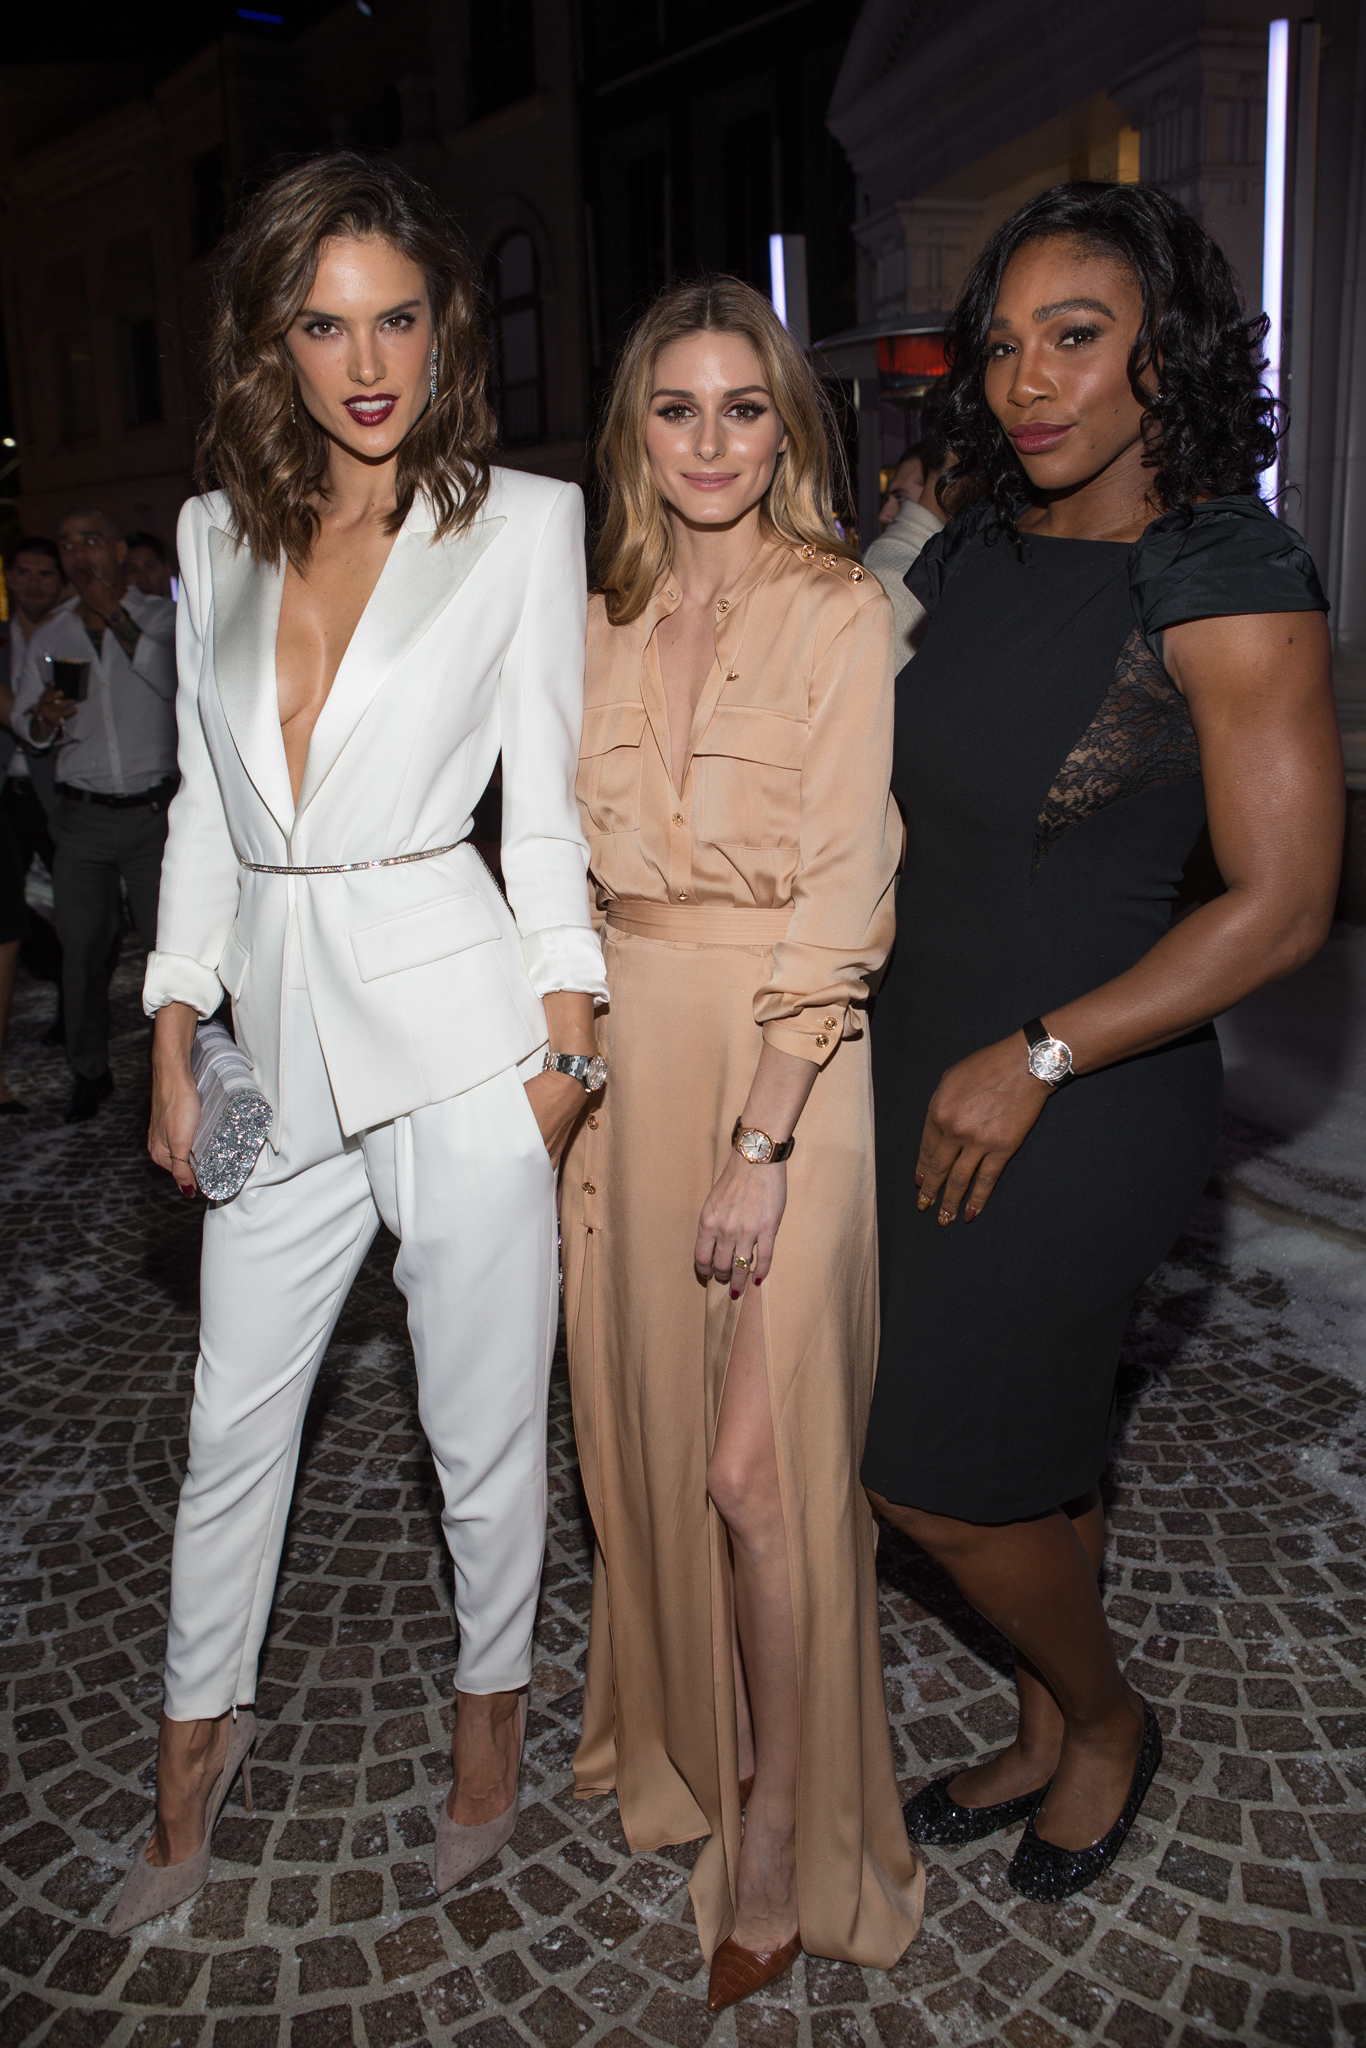 Alessandra Ambrosio, Olivia Palermo and Serena Williams AUDEMARS PIGUET CELEBRATES GRAND OPENING OF RODEO DRIVE BOUTIQUE - Beverly Hills, Ca